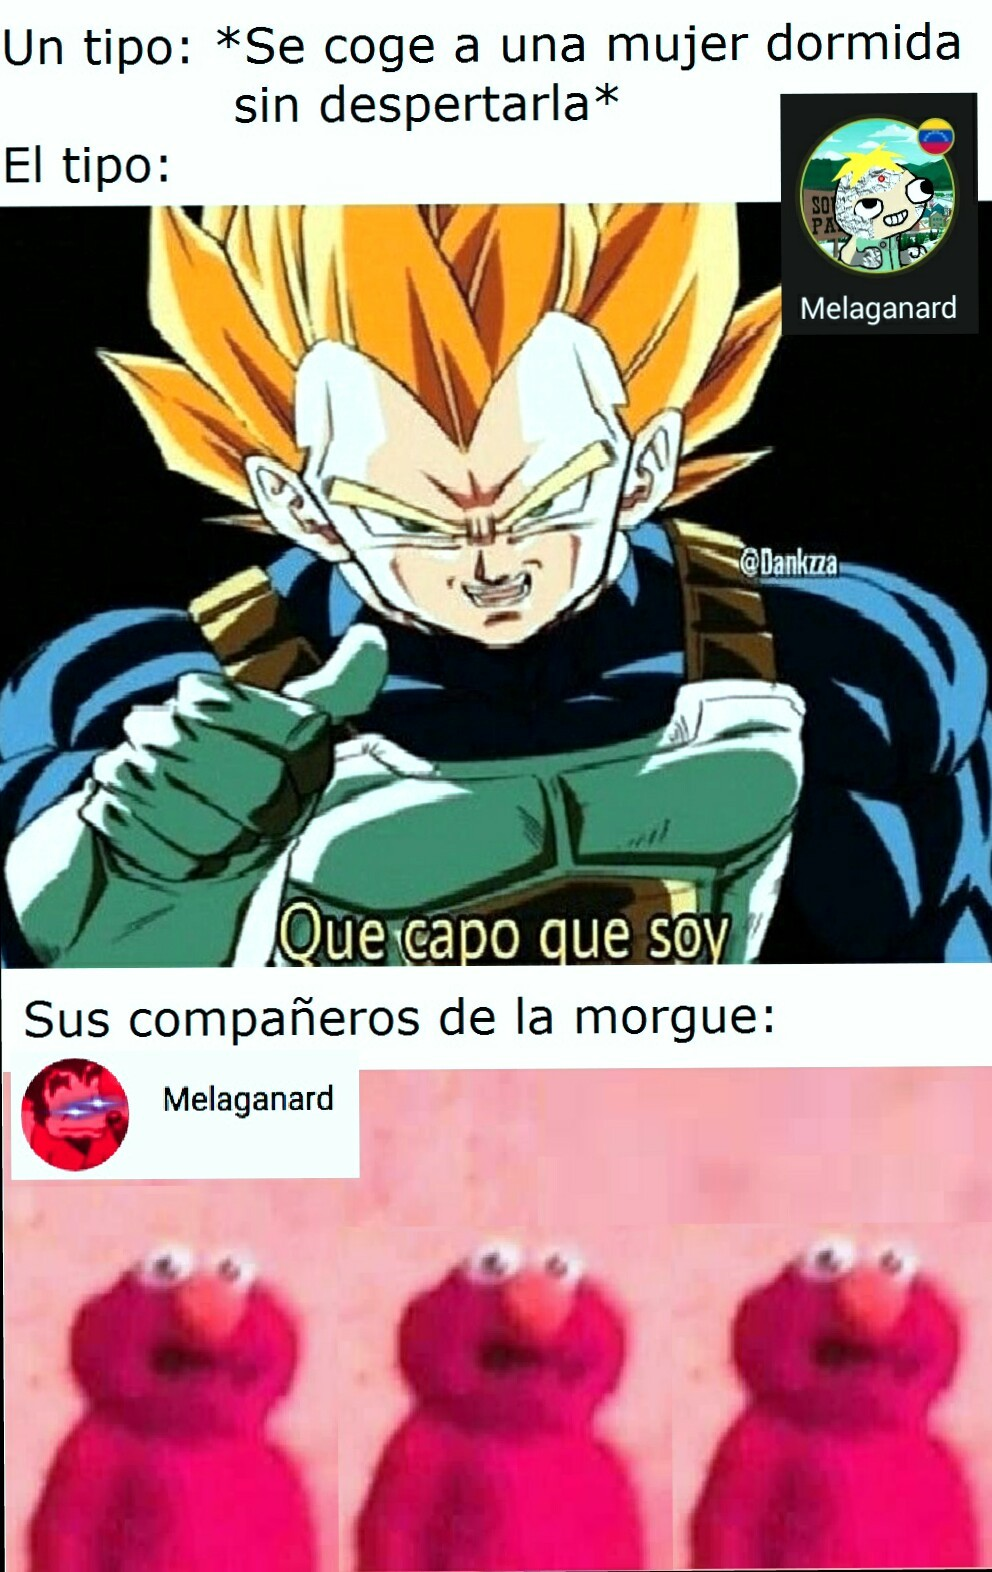 No, vegeta, tu no - meme